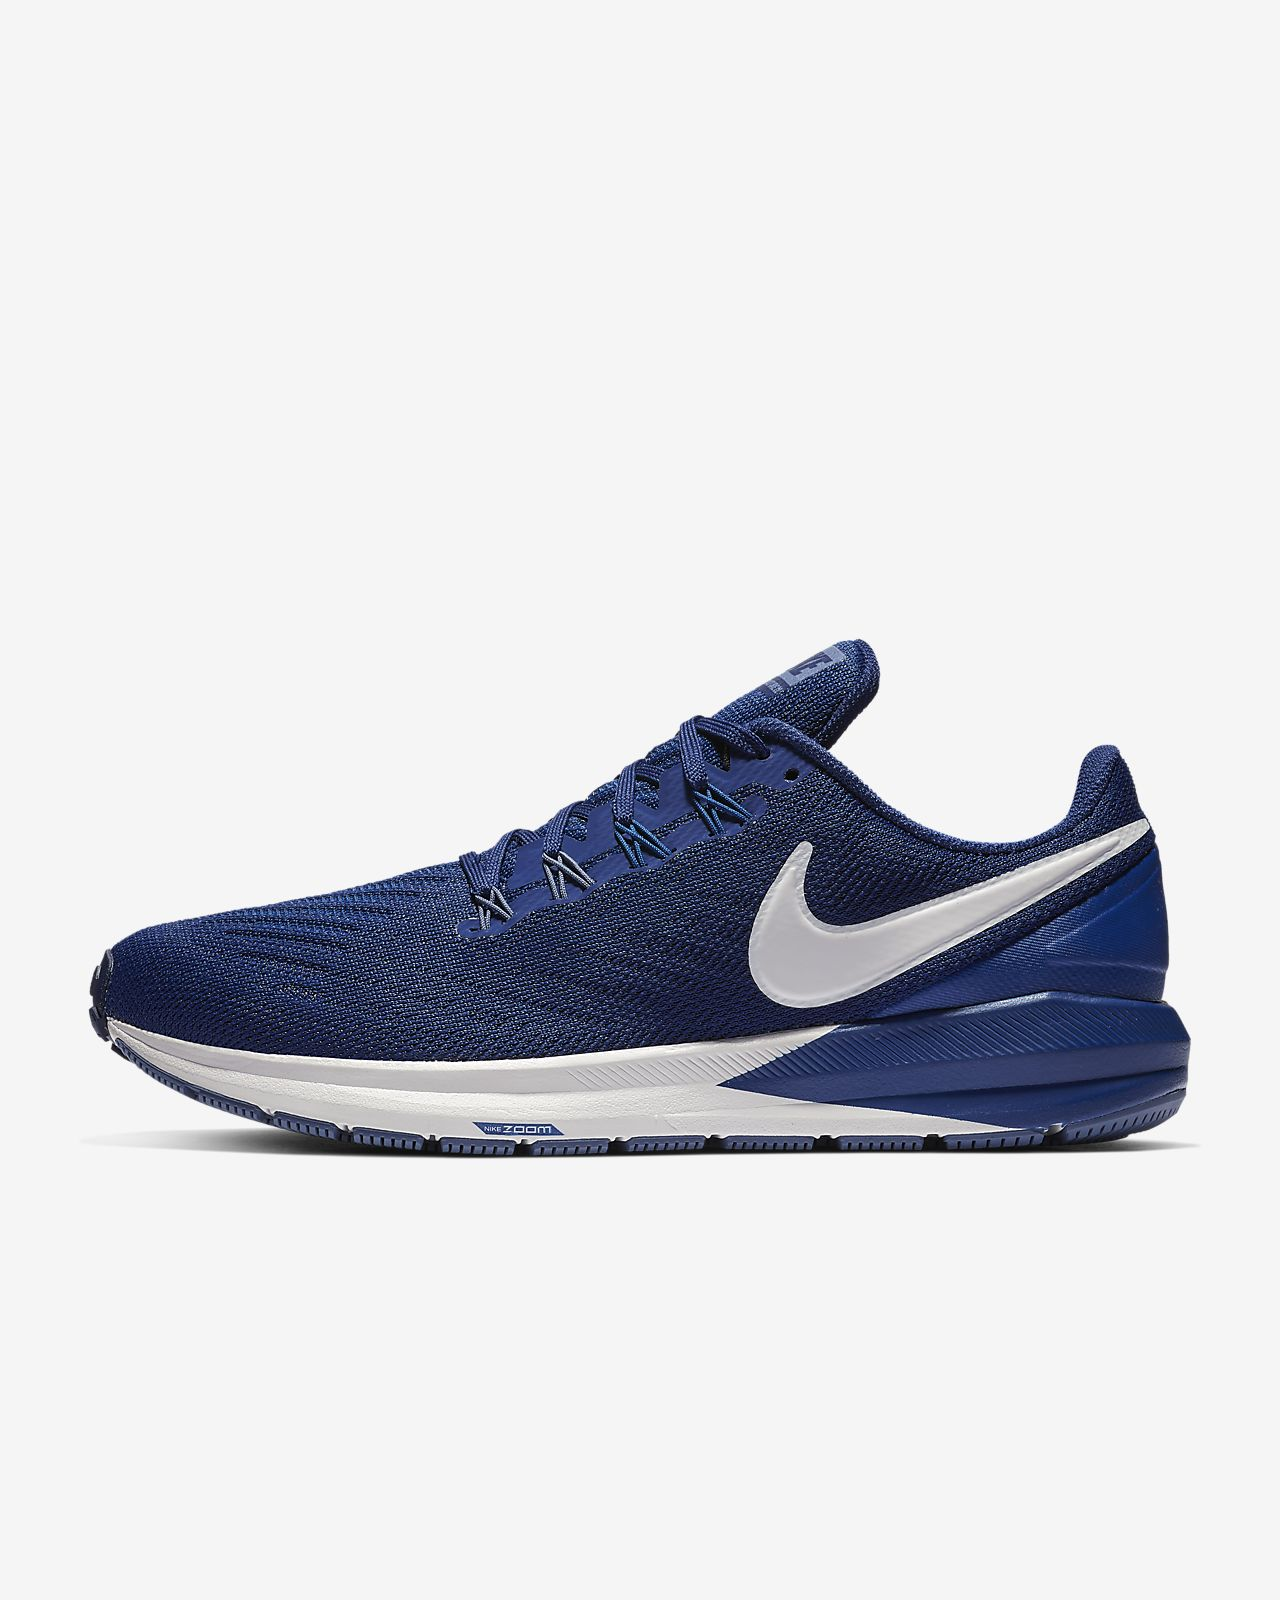 Nike Air Zoom Structure 22 Men's Running Shoe (Narrow)